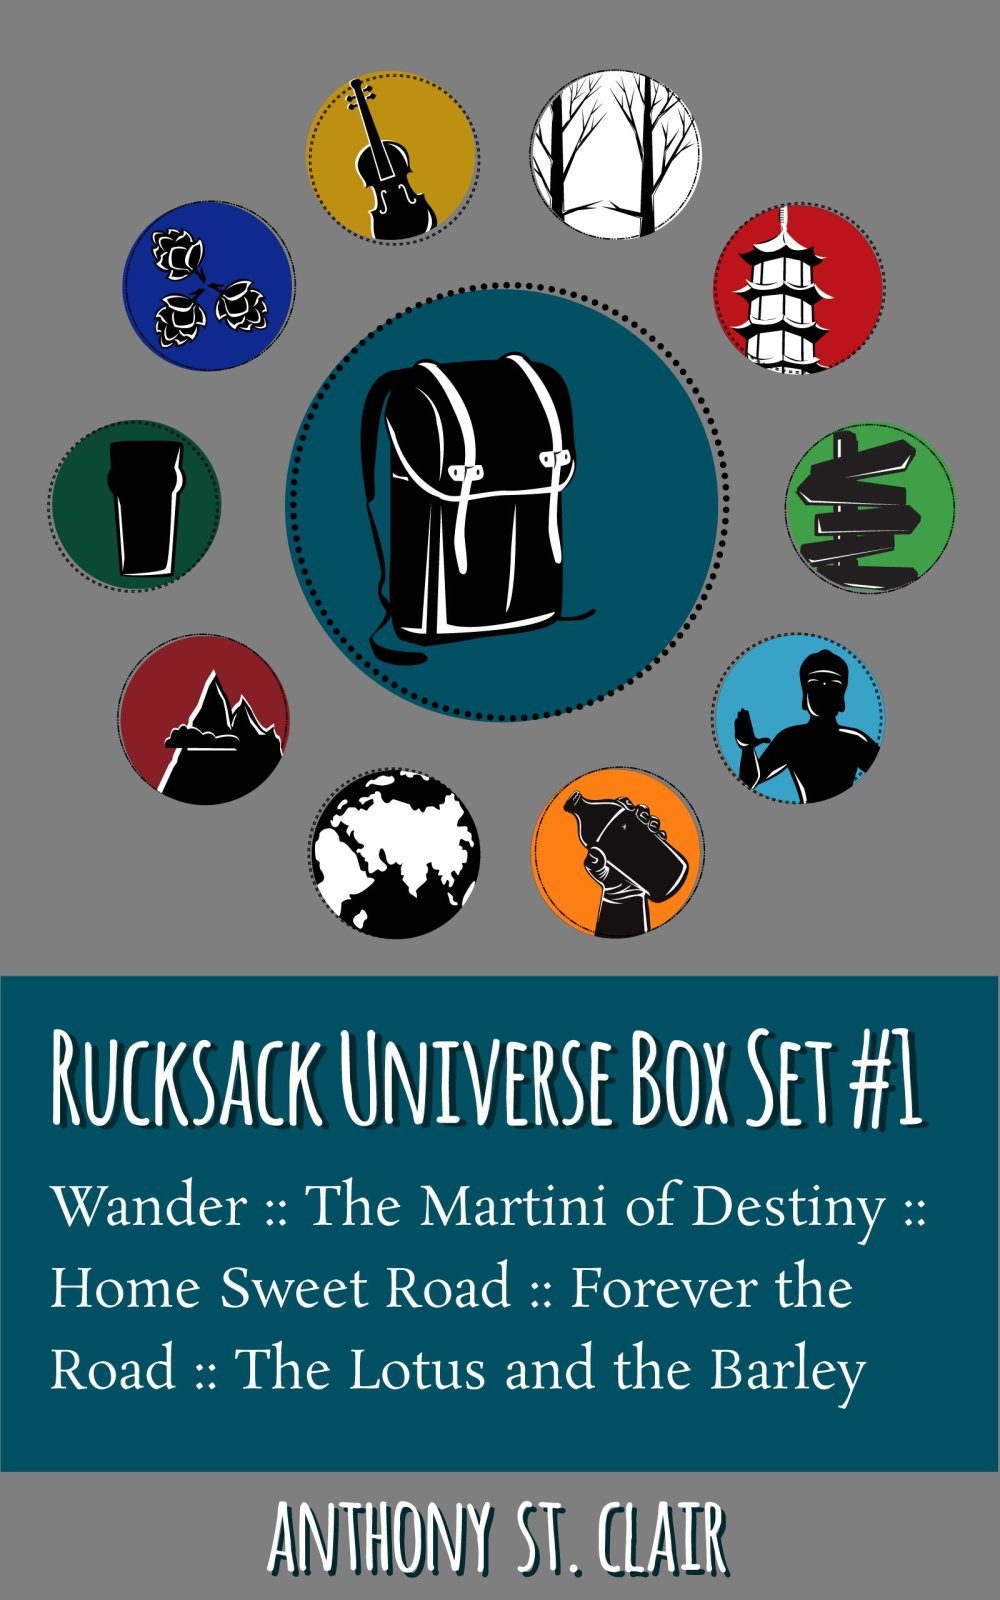 Rucksack Universe Box Set #1: Includes Wander, The Martini of Destiny, Home Sweet Road, Forever the Road, and The Lotus and the Barley